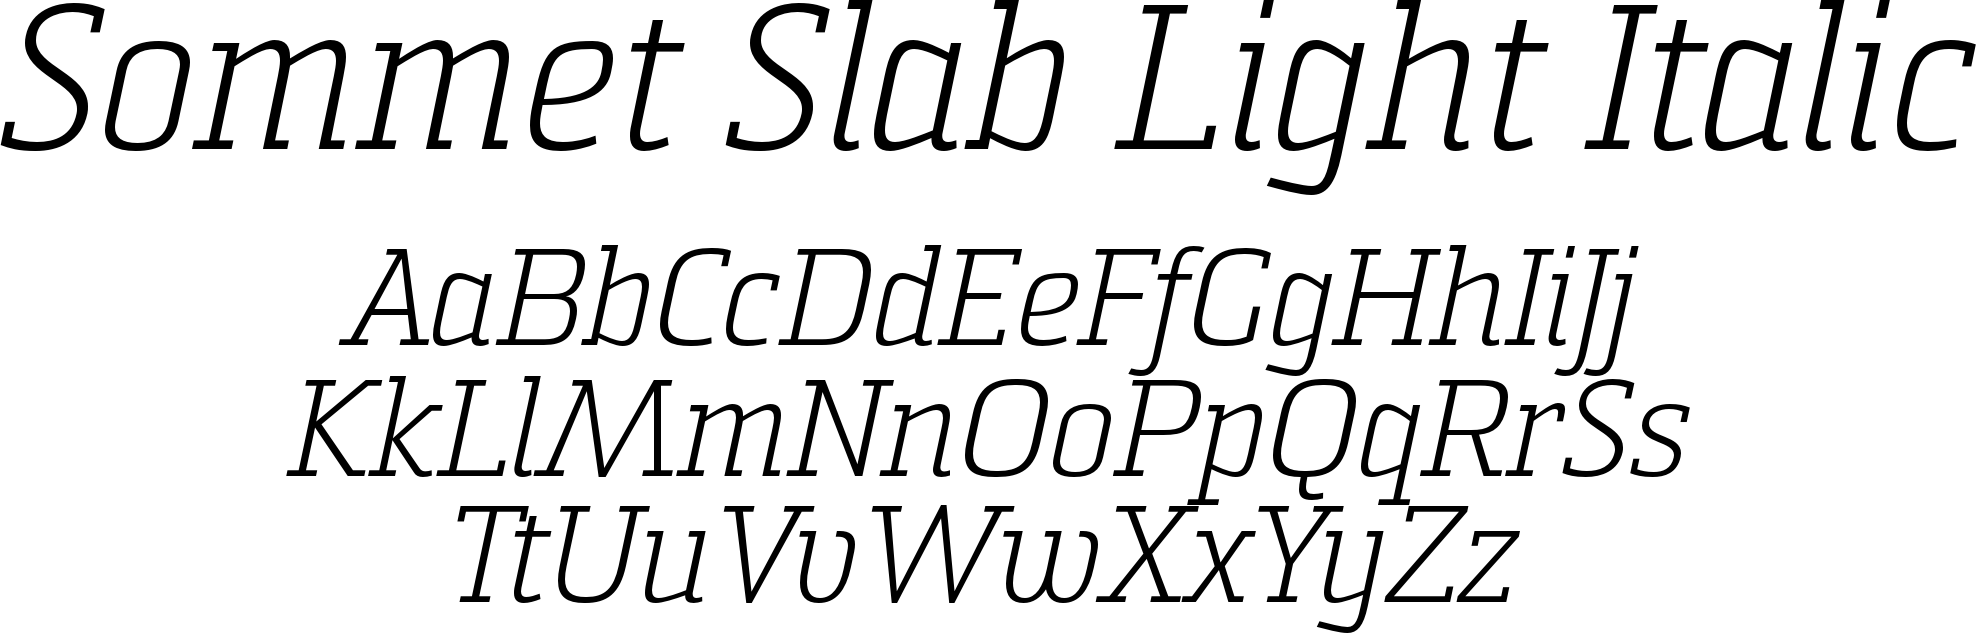 Sommet Slab Light Italic